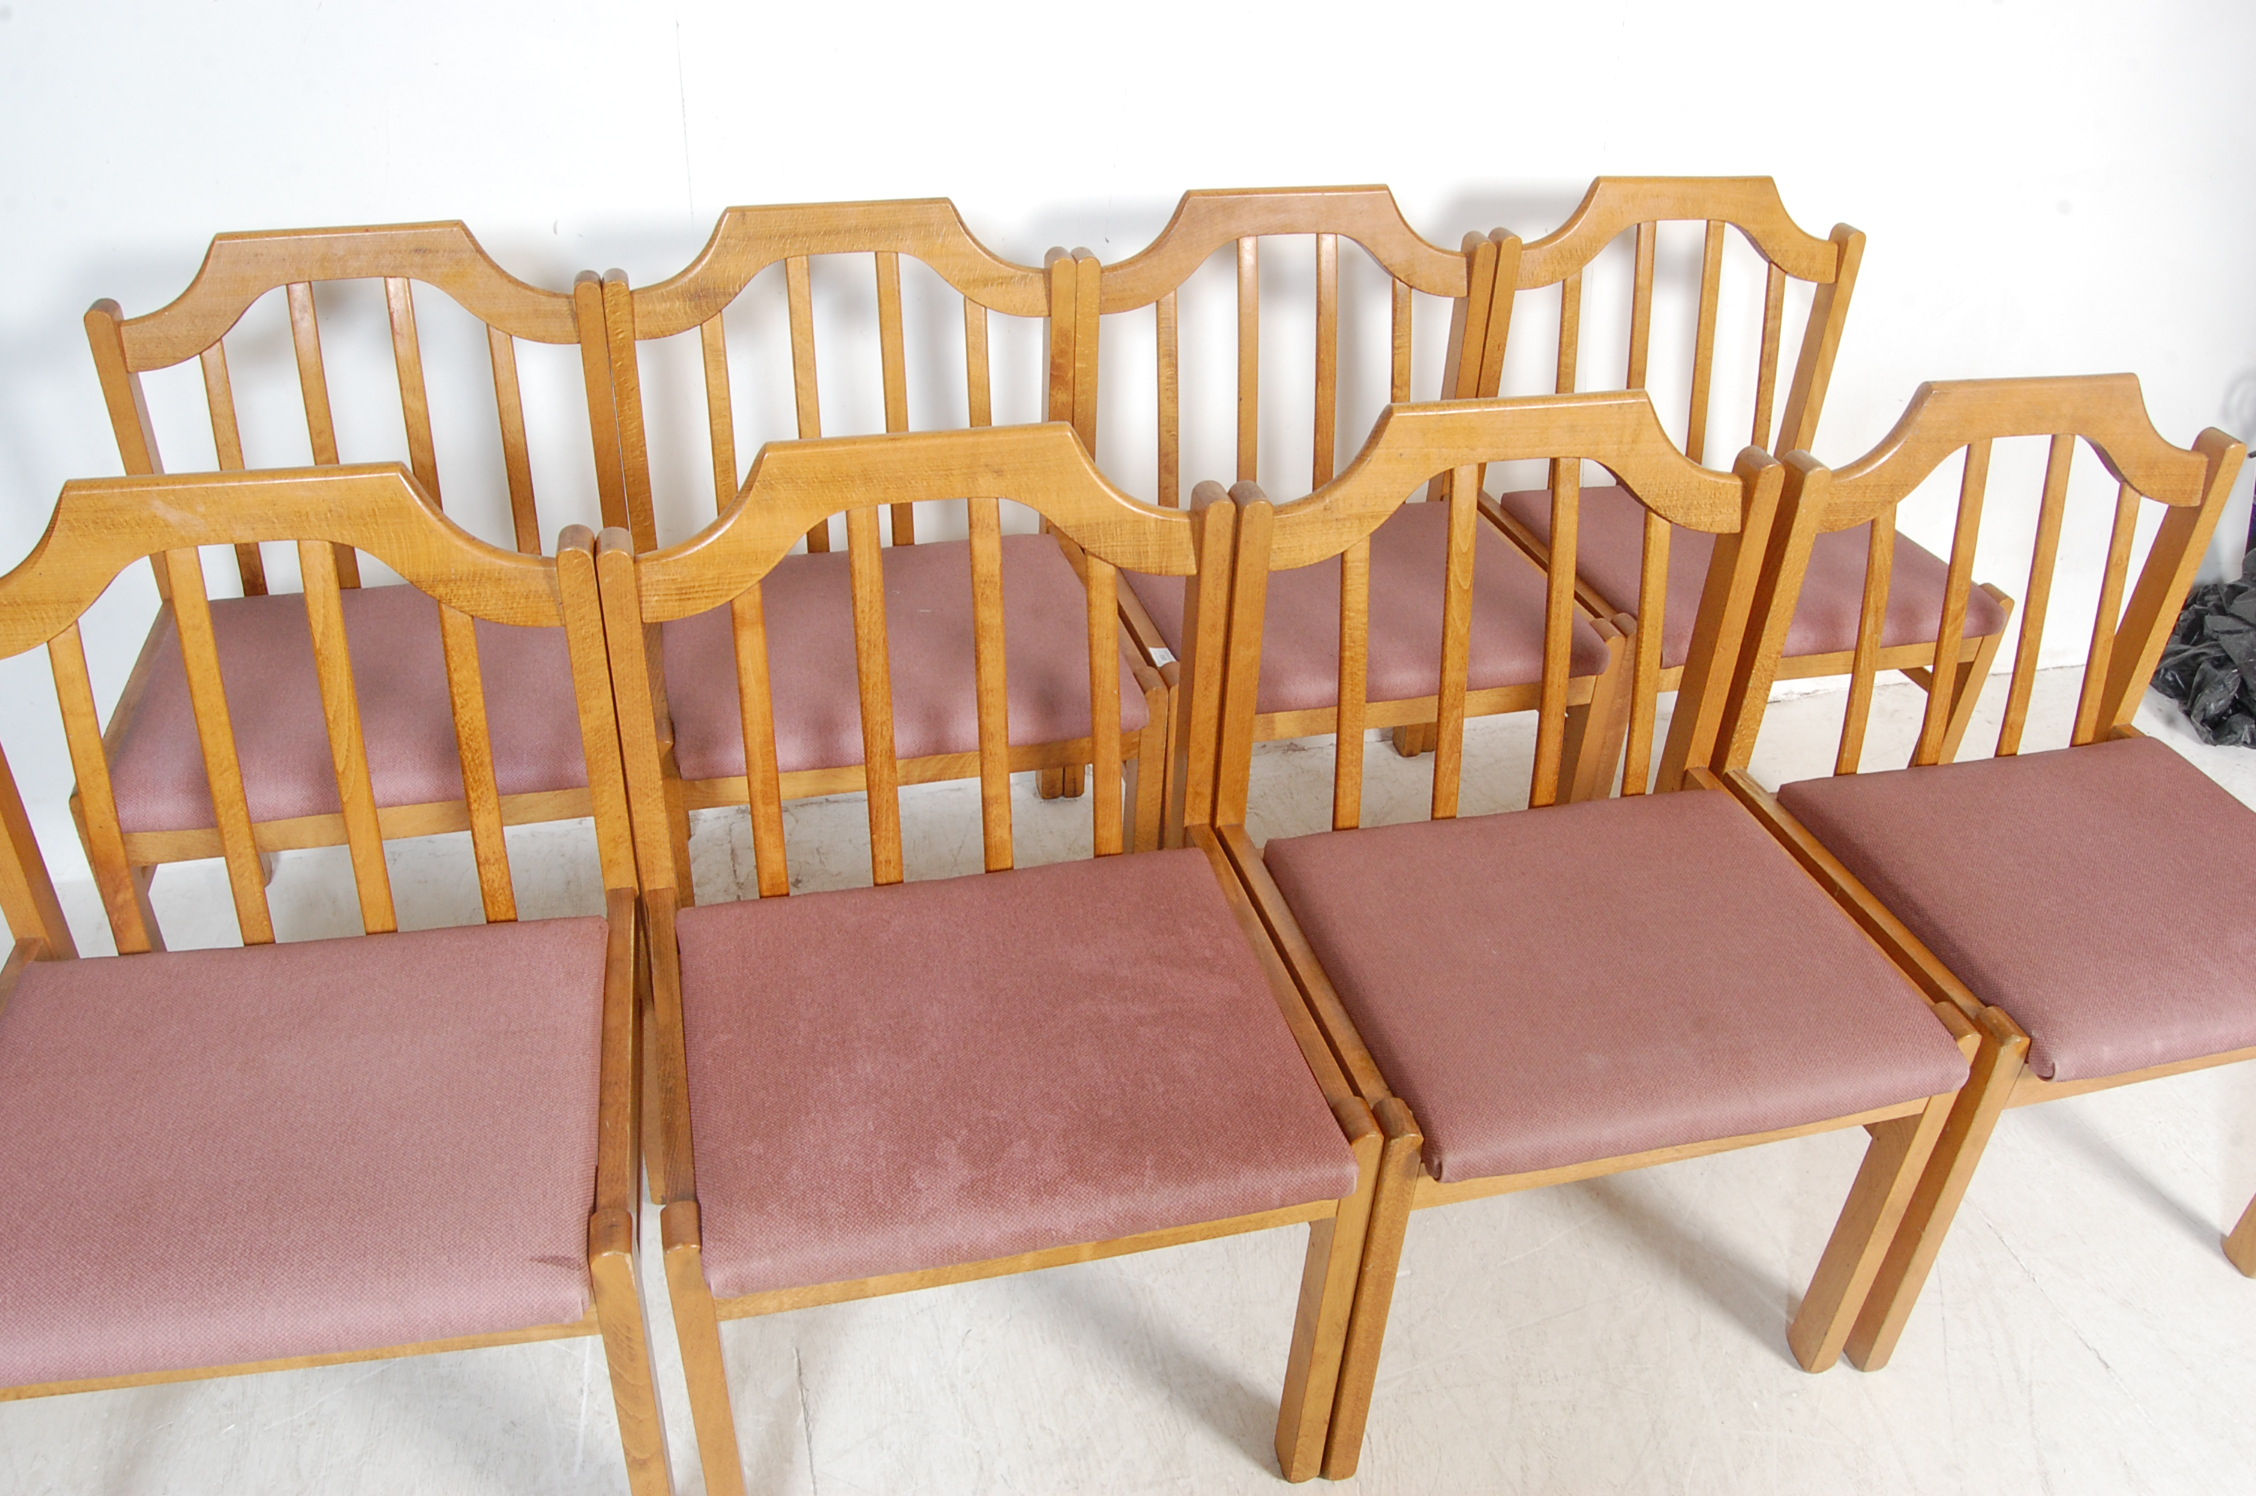 EIGHT VINTAGE GOLDEN OAK DINING CHAIRS - Image 3 of 8